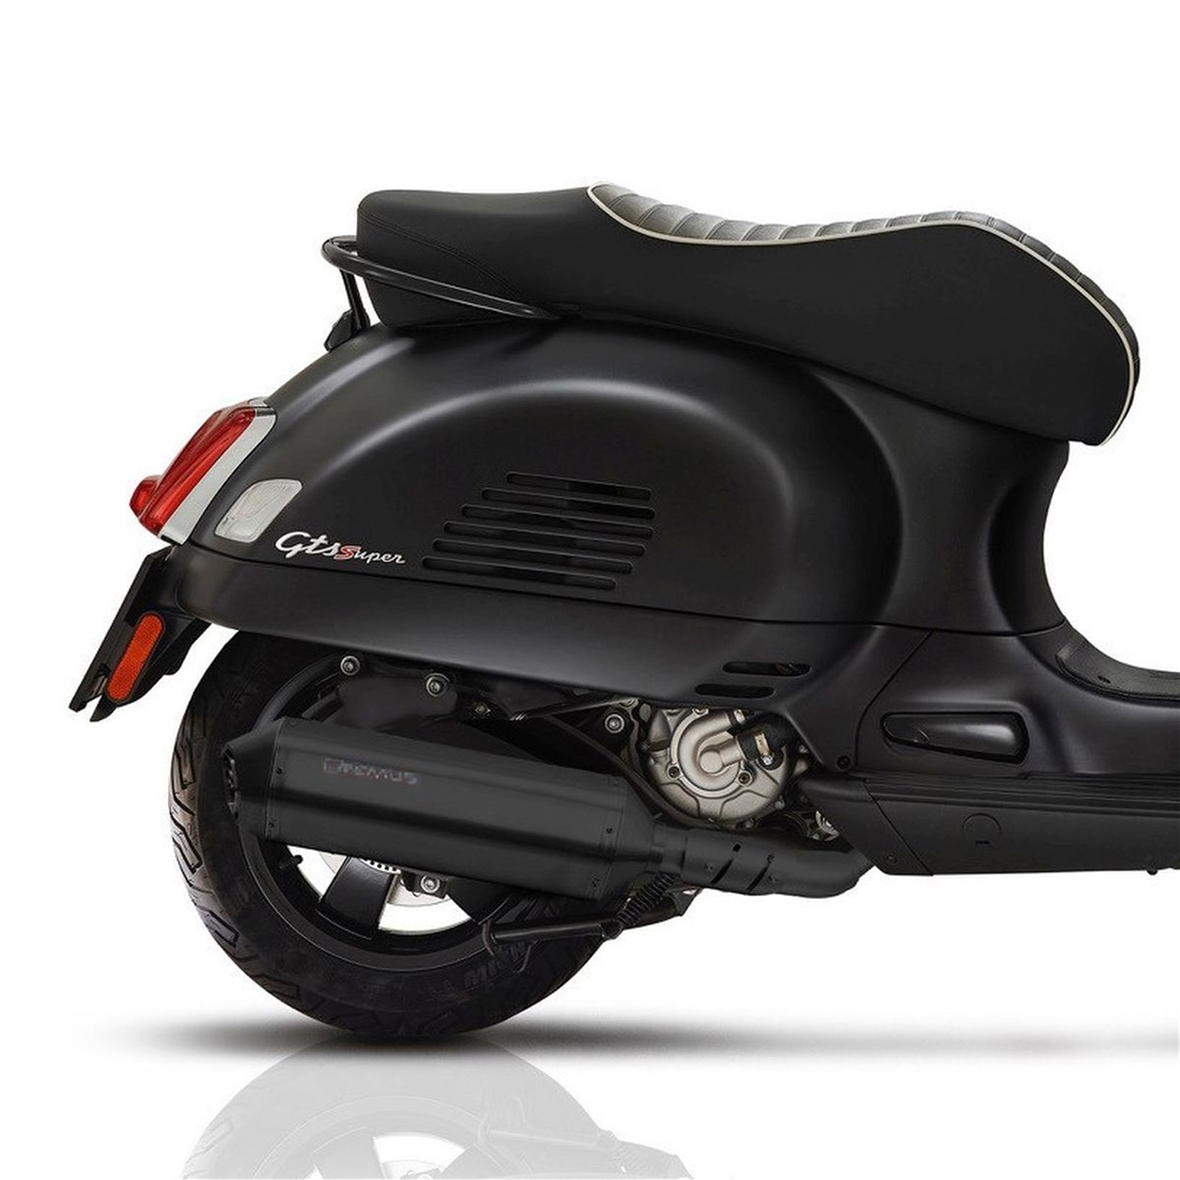 Racing Exhaust Remus Notte Limited Edition For Vespa Gts Gts Sup